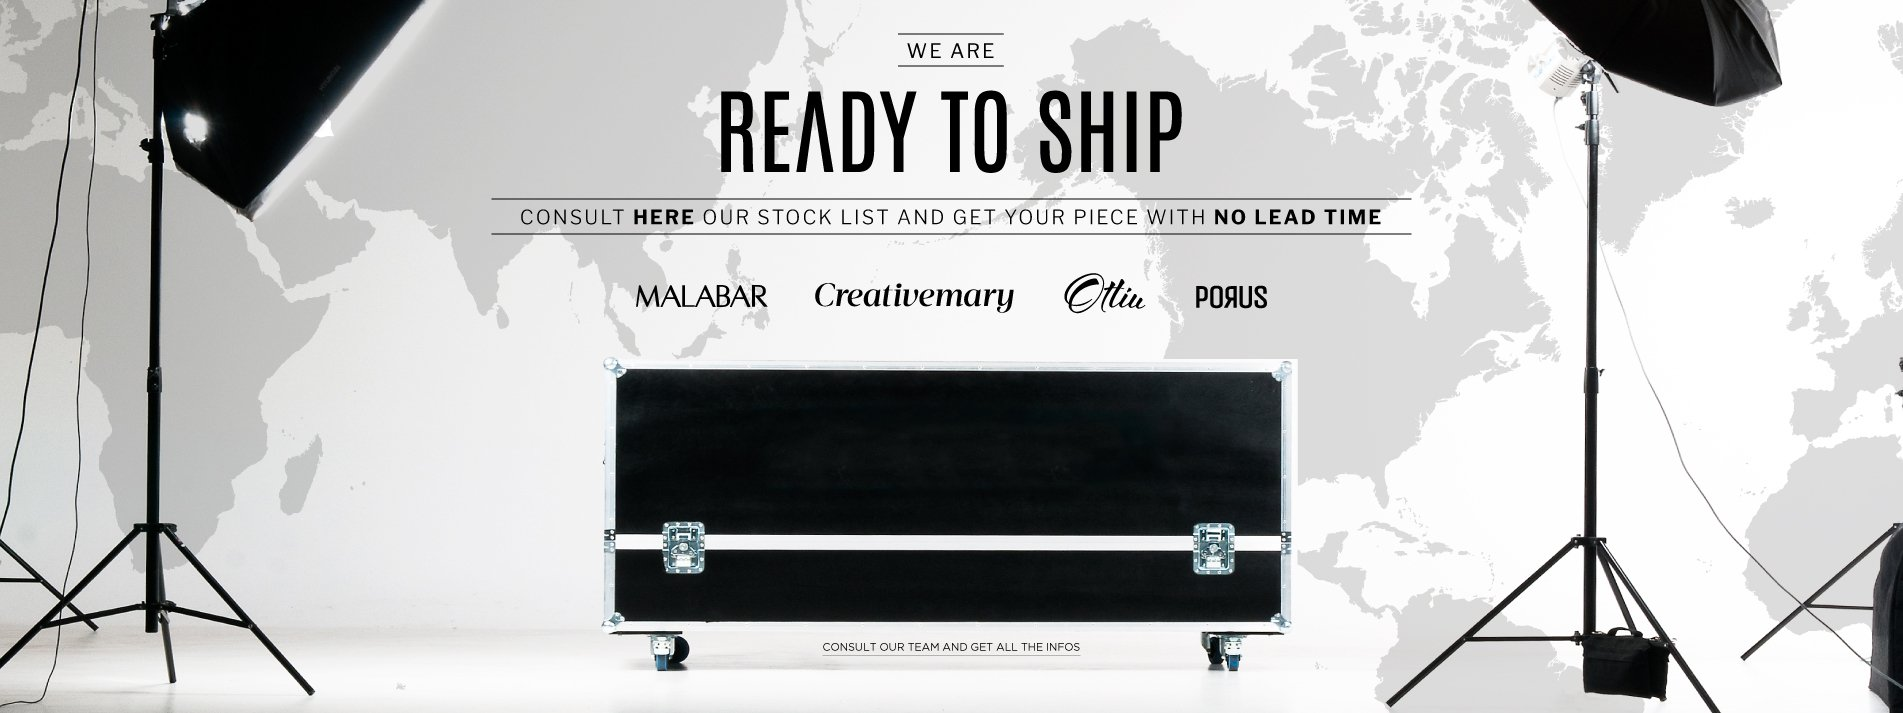 5malabar-ready-to-ship-homepage